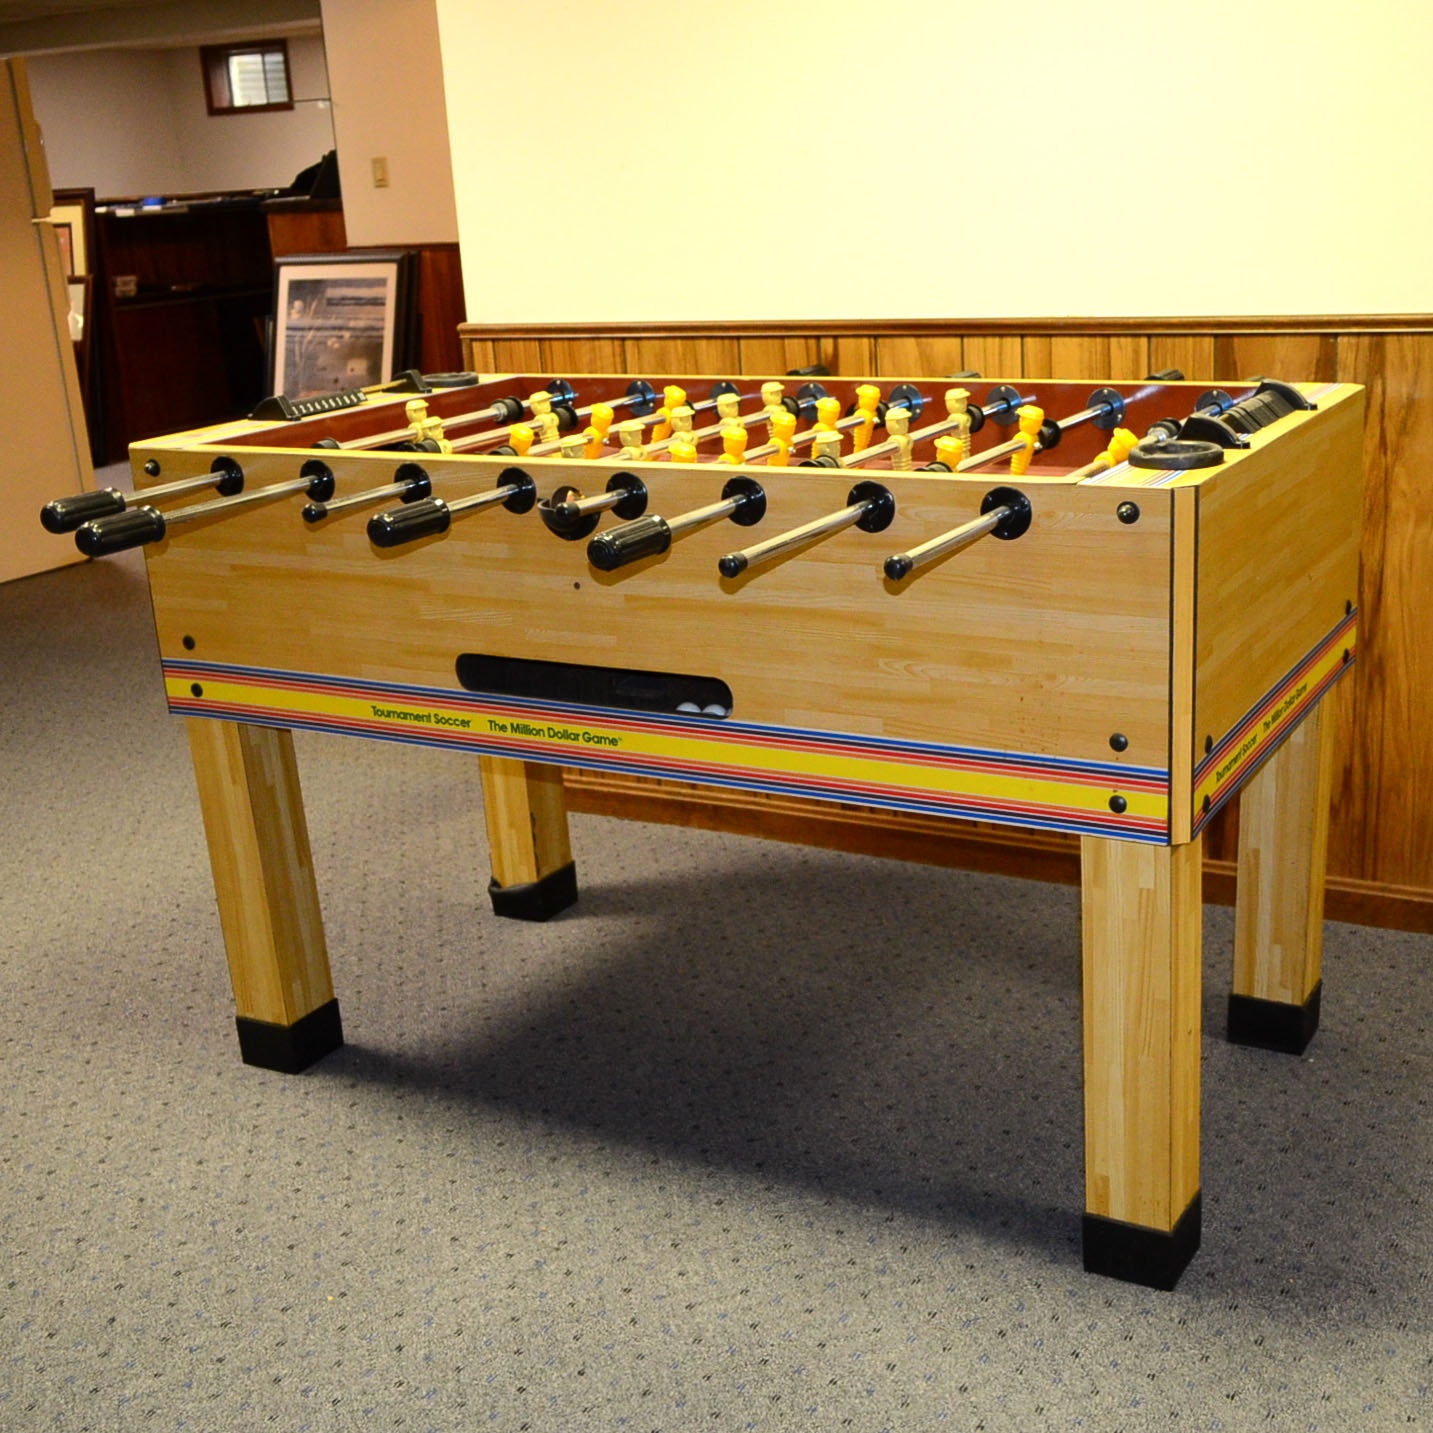 tournament soccer the million dollar game foosball table - Foosball Table For Sale